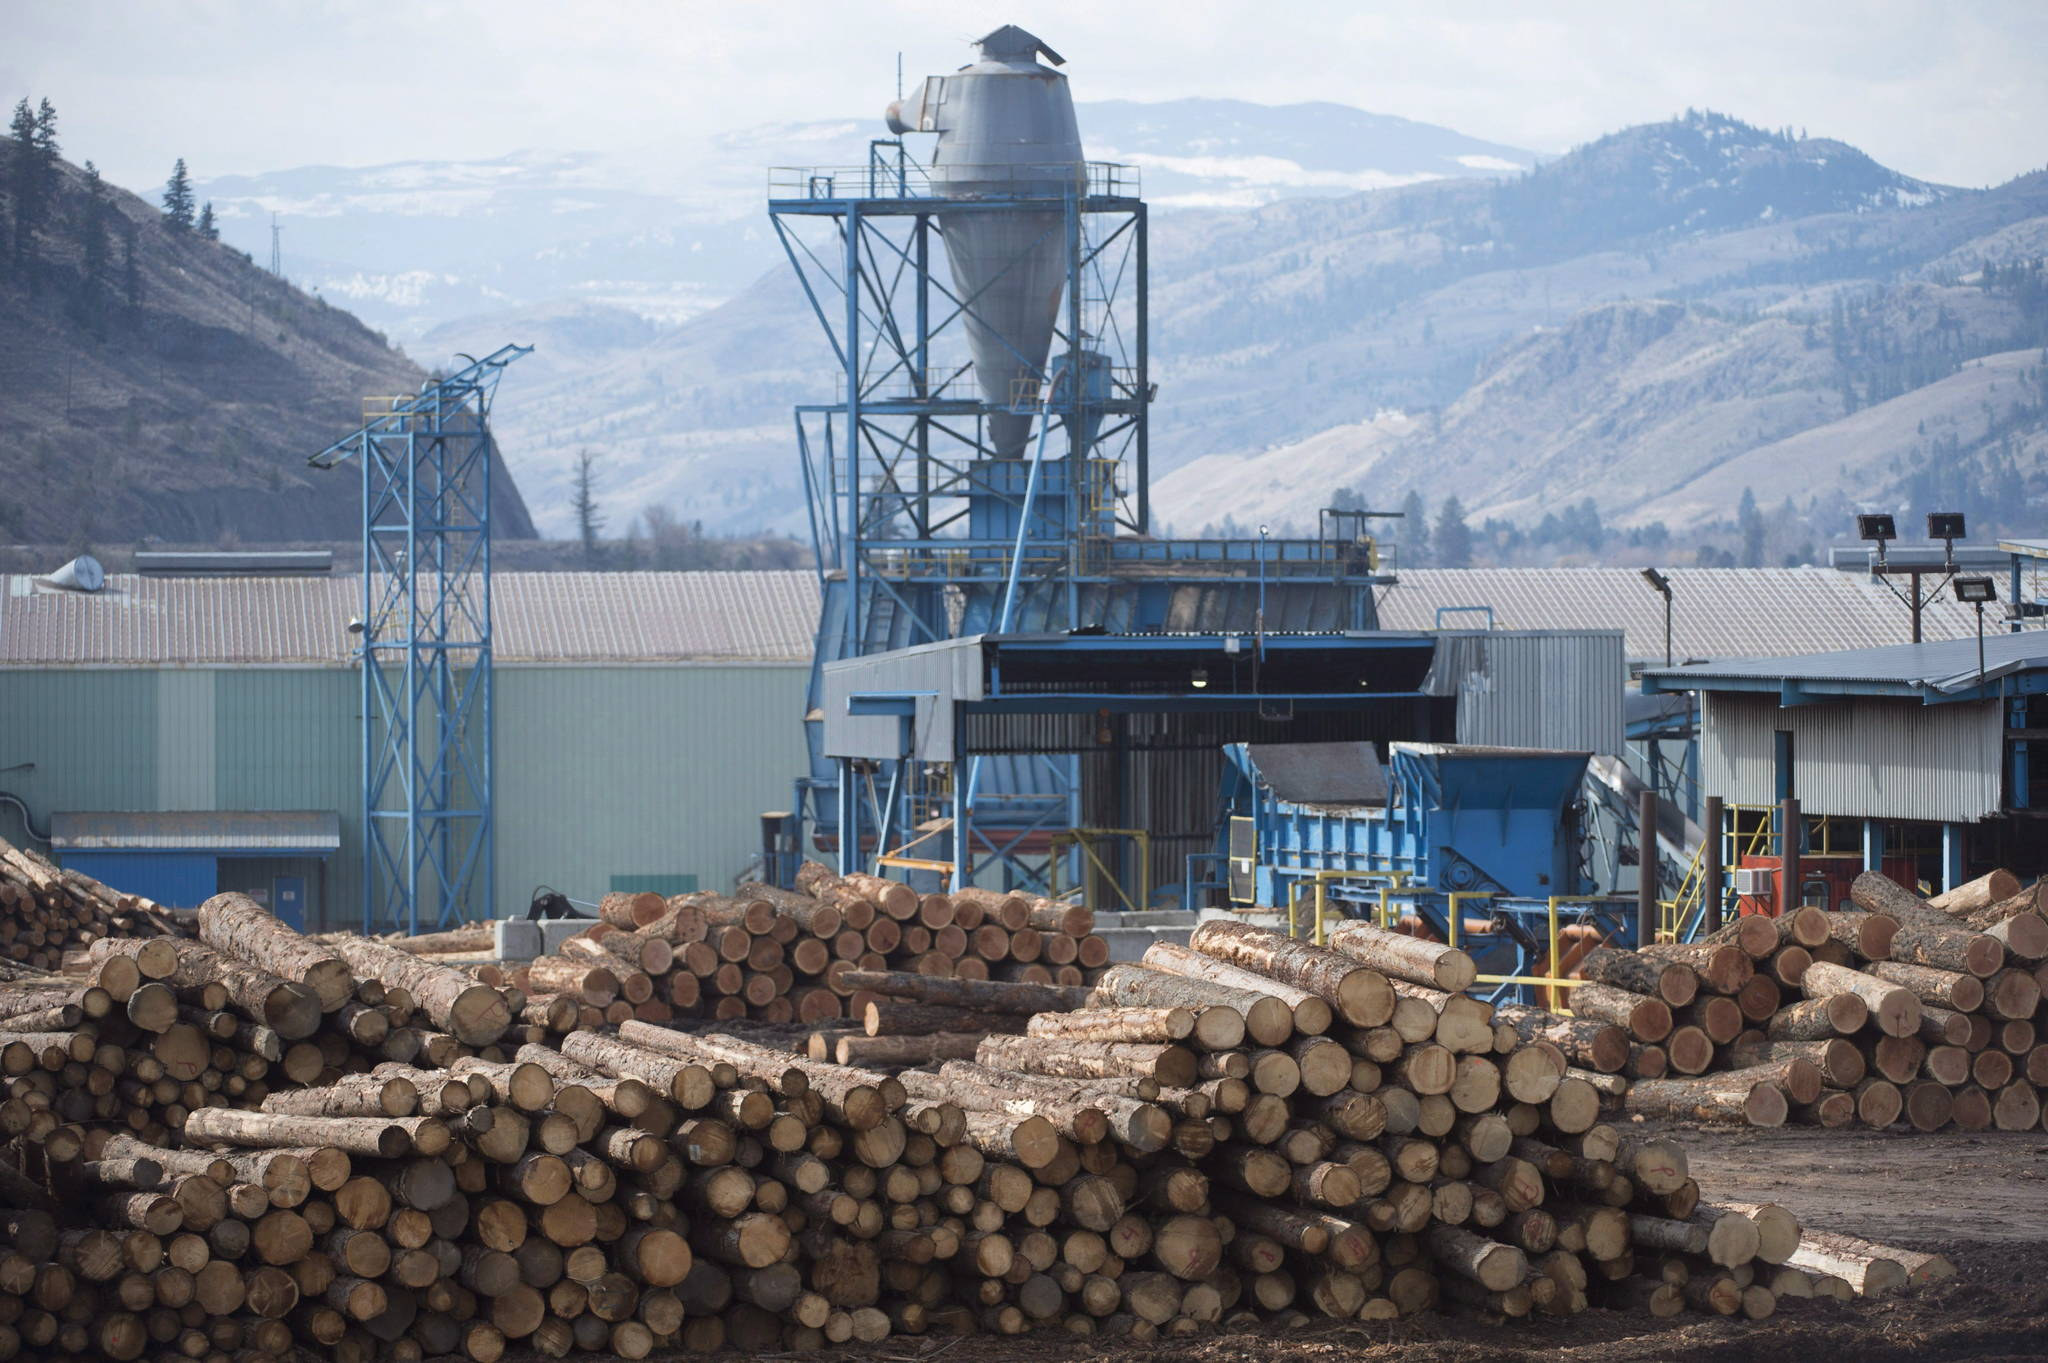 An energetic rally by workers in the north-central British Columbia community of Mackenzie has highlighted the desperate situation facing many forestry-dependent communities across the province. Softwood lumber is pictured at Tolko Industries in Heffley Creek, B.C., Sunday, April, 1, 2018. Three wood products operations in Mackenzie closed indefinitely or cut back hours this summer, blaming high log costs and adverse market conditions. THE CANADIAN PRESS/Jonathan Hayward